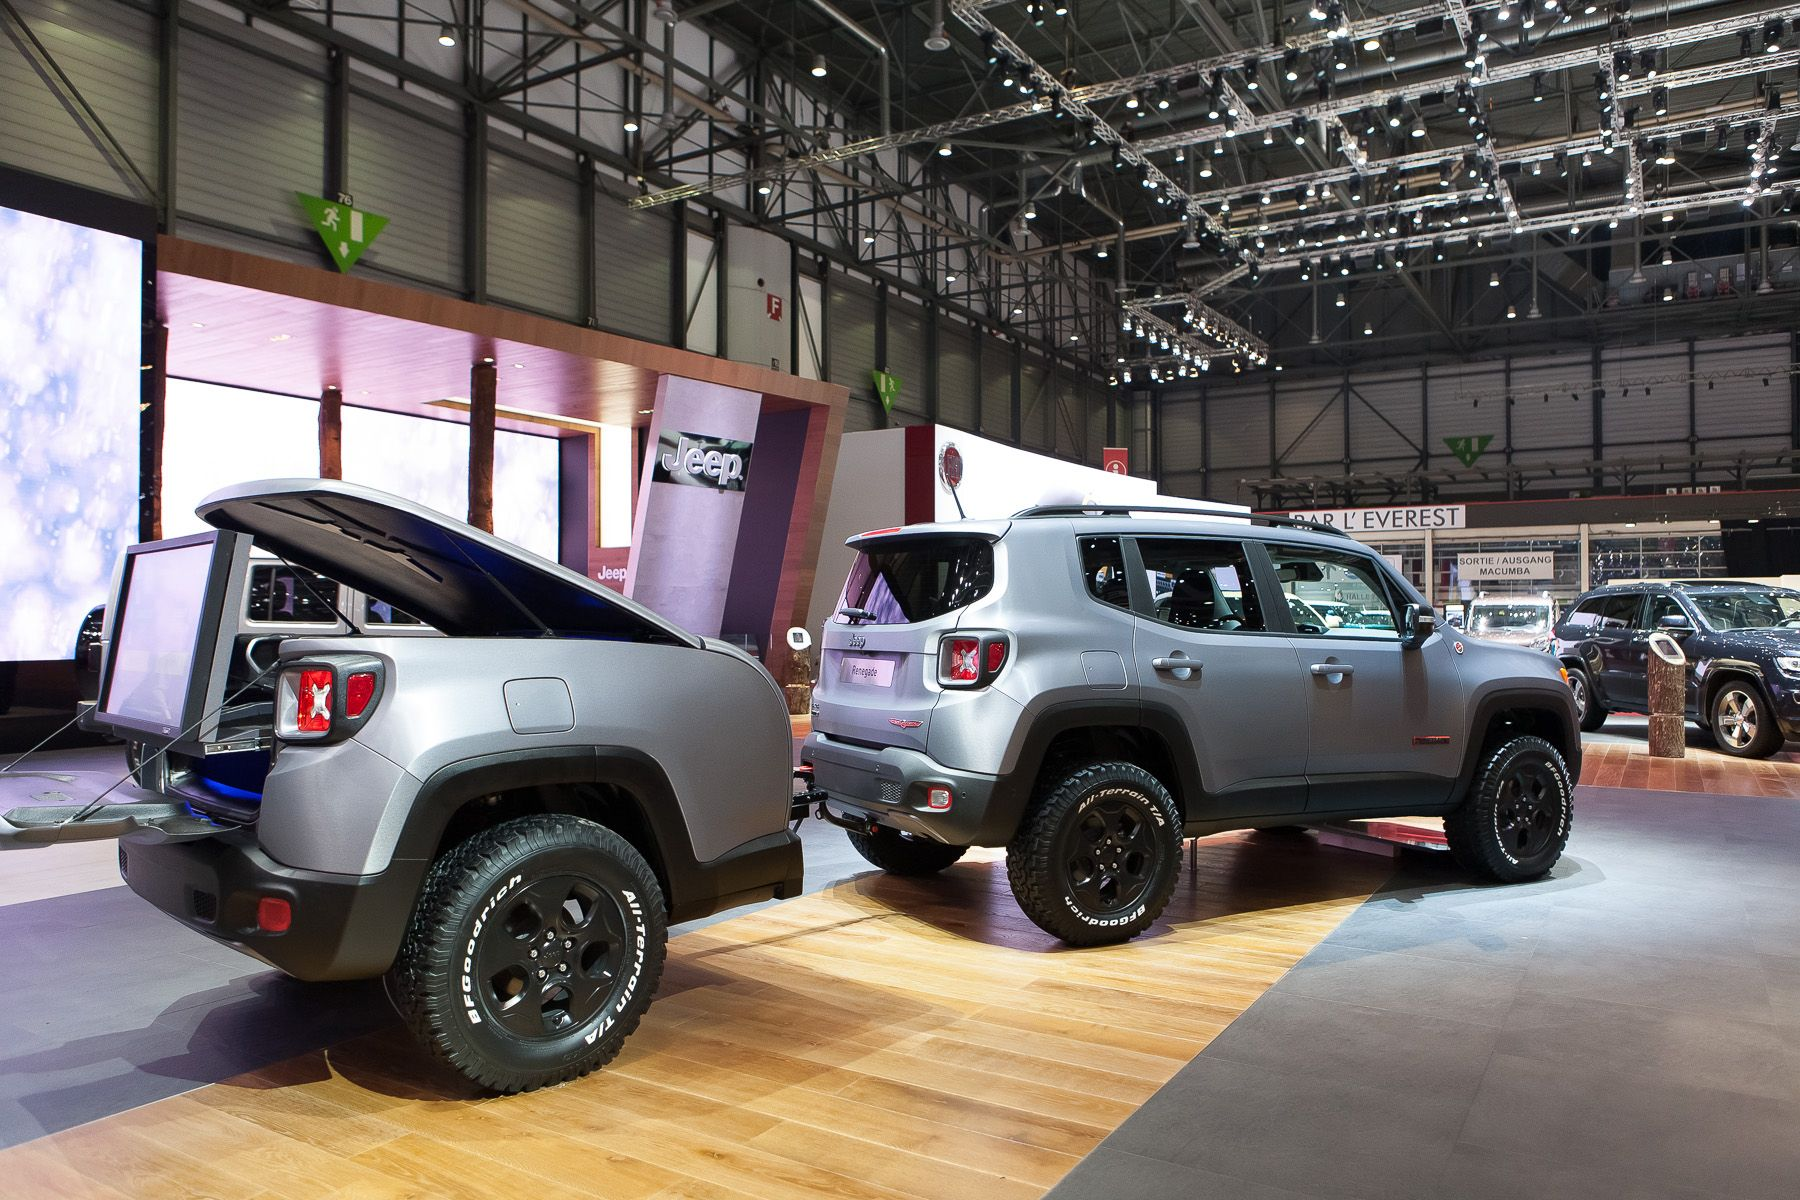 Jeep Renegade Hard Steel Www Voyagerclub Pl Carros Auto